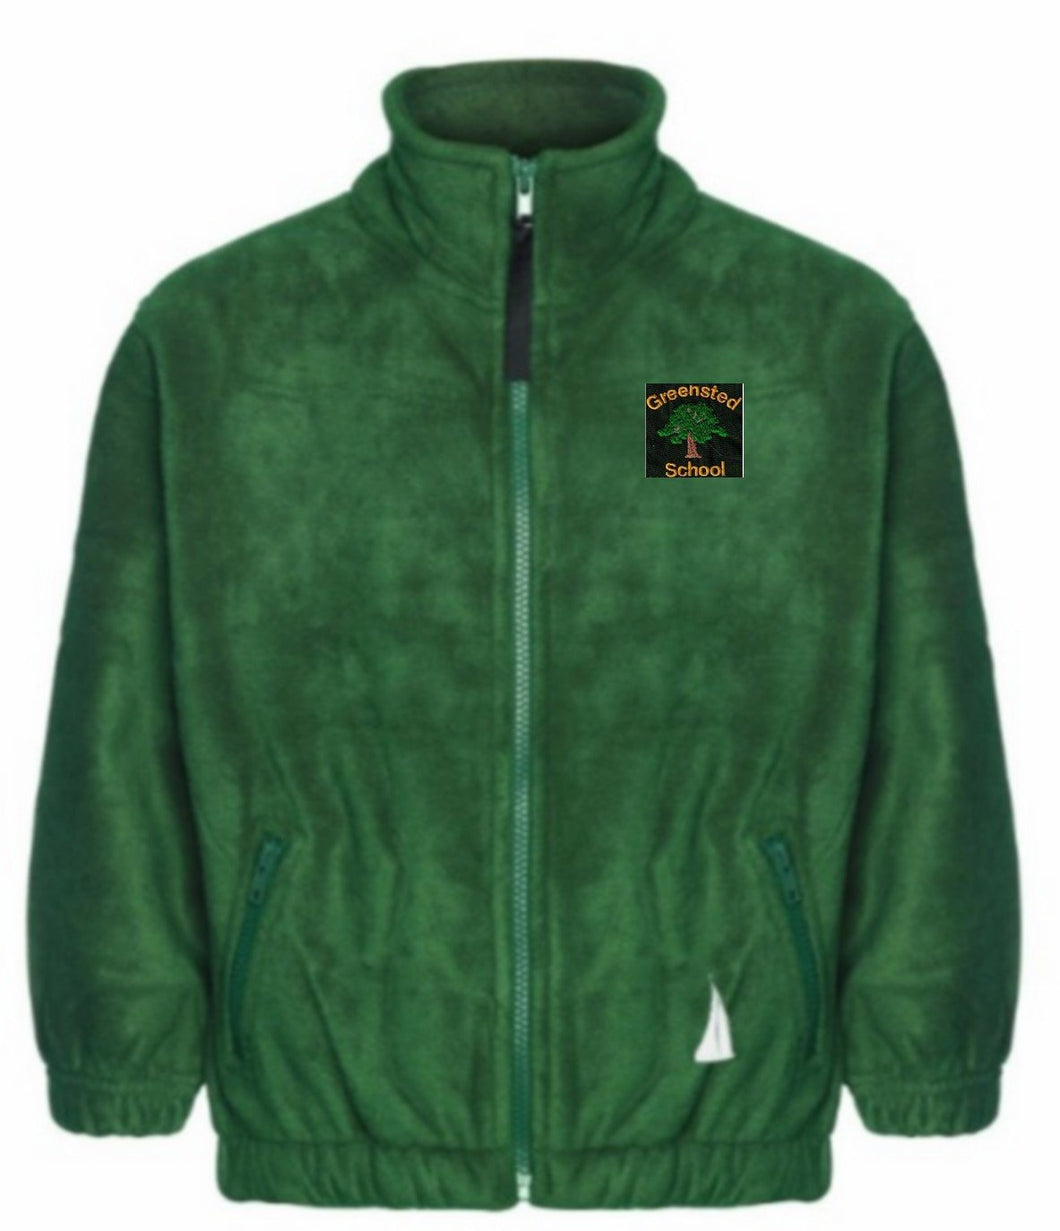 Greensted Infant School and Nursery - Bottle Fleece Jacket with School Logo BOTTLE / 36 School Uniform Centres Outdoor school-uniform-centres.myshopify.com Schoolwear Centres